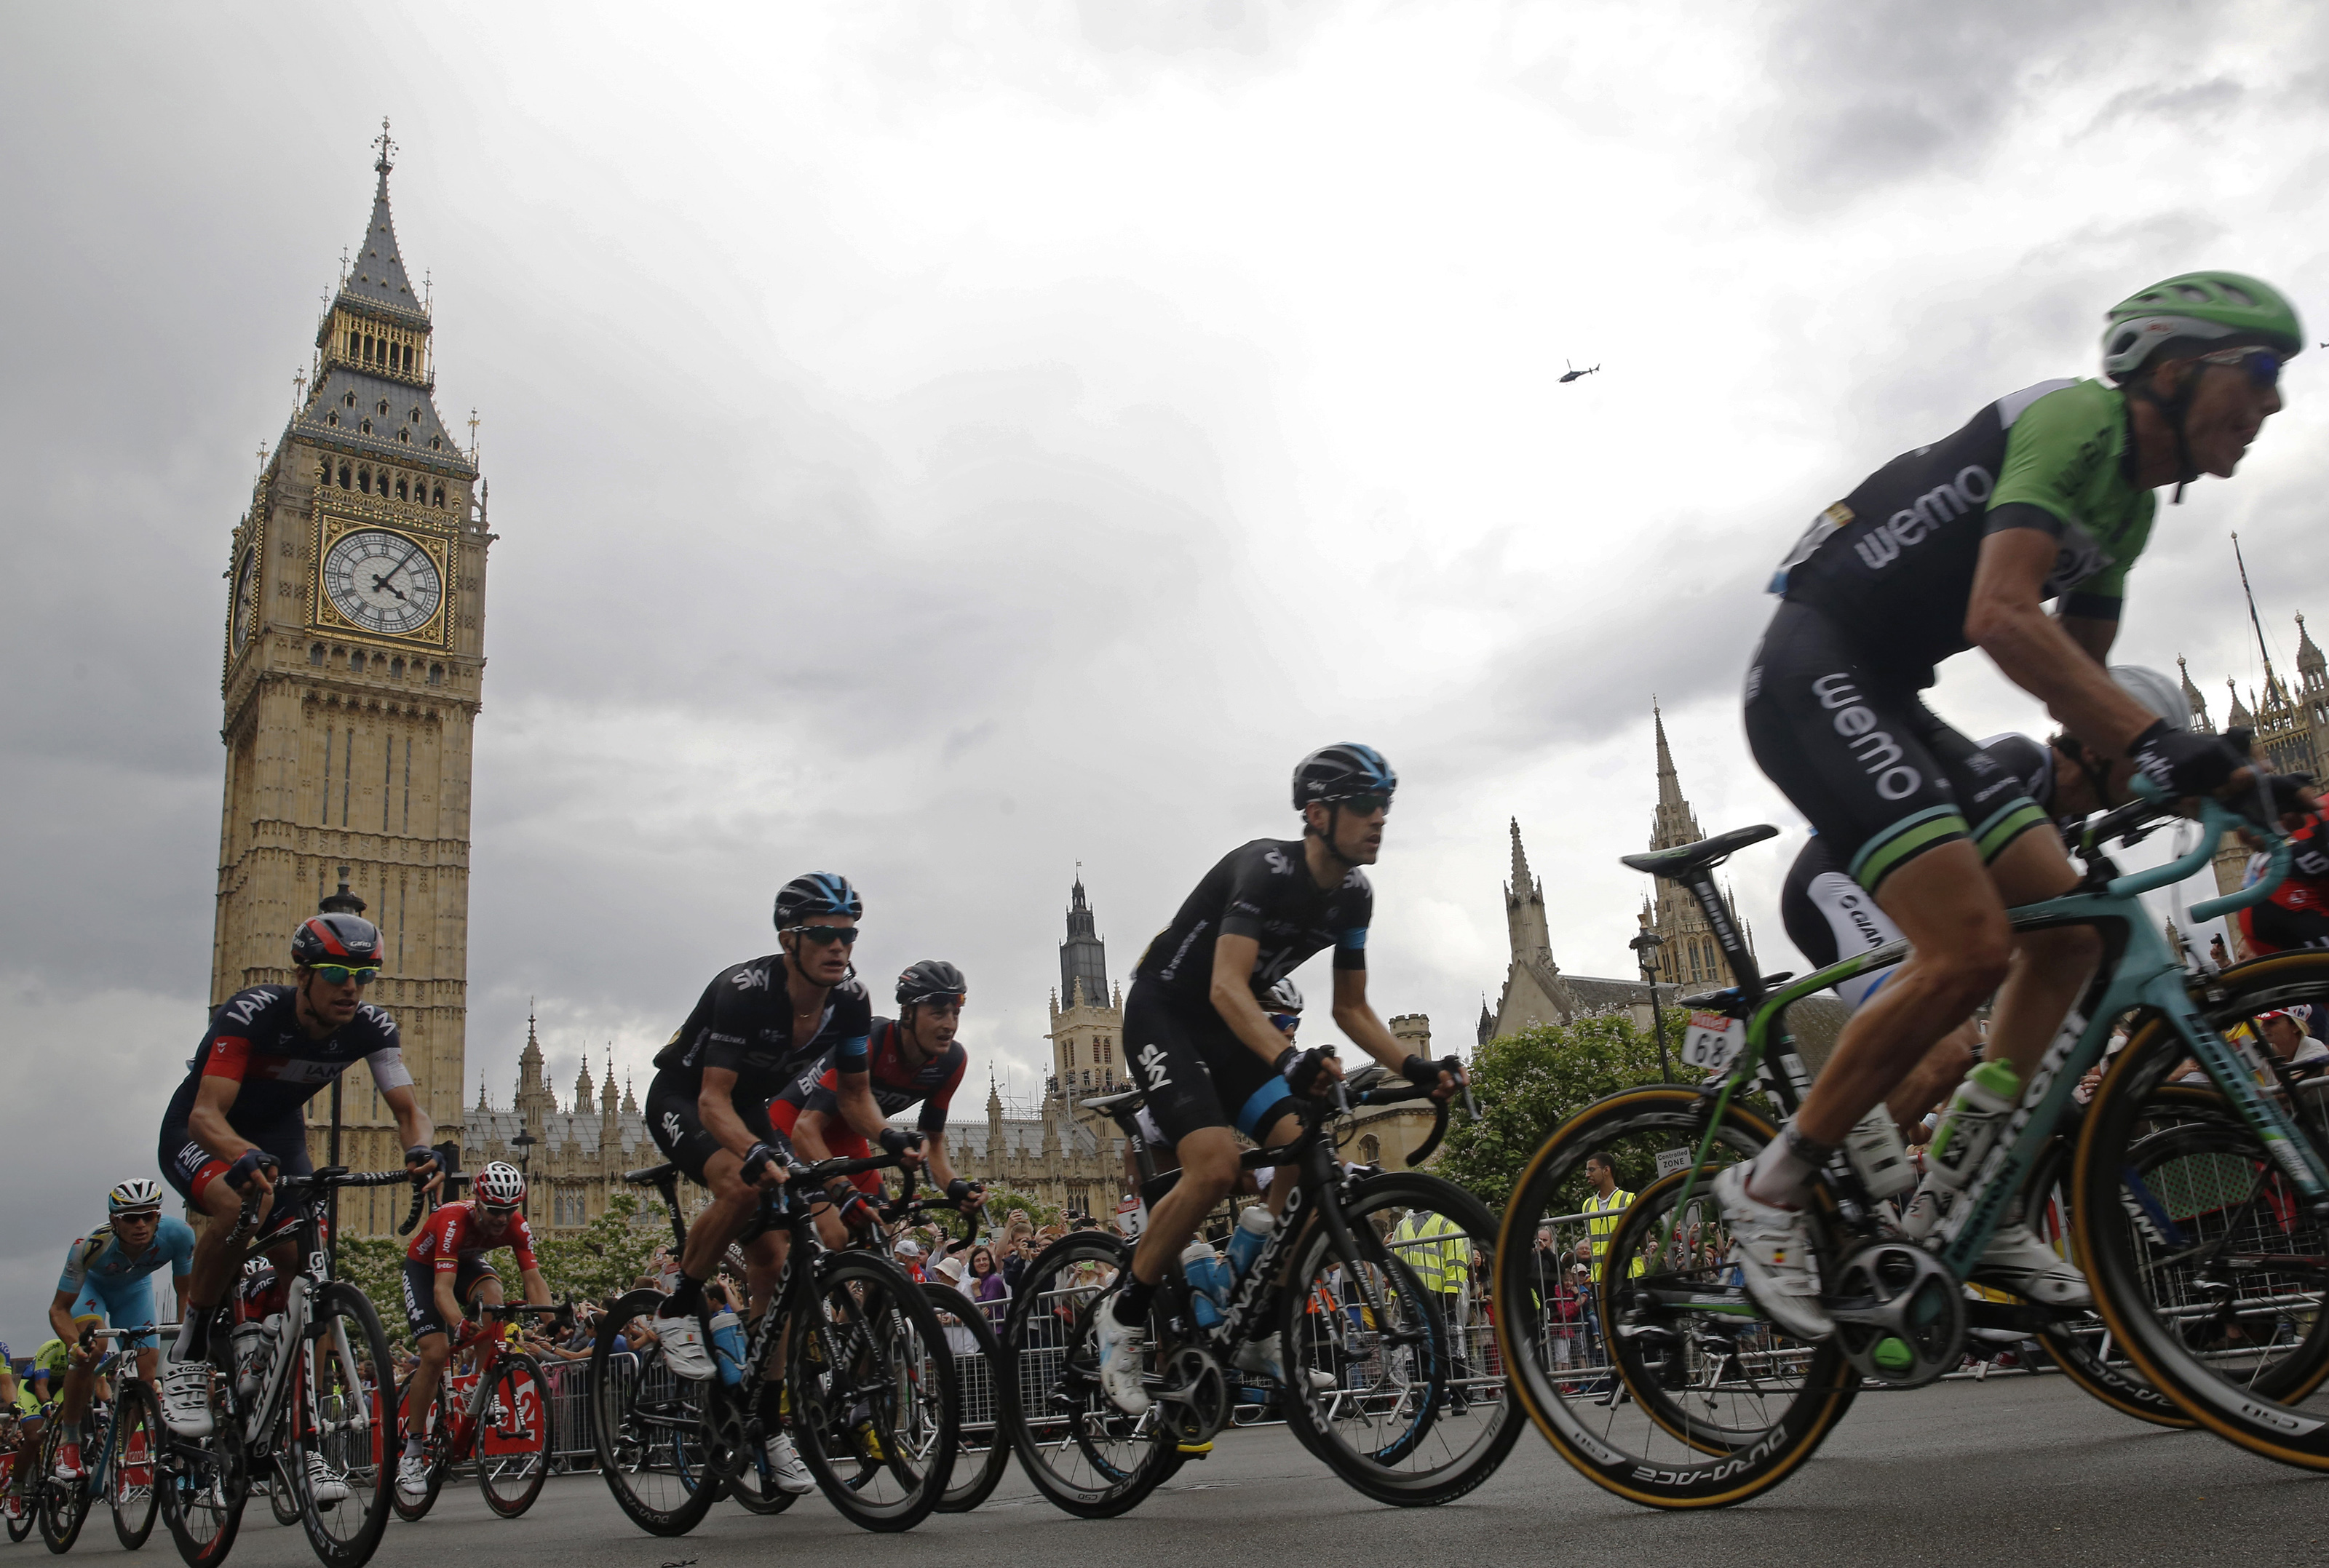 Photo: some of the stand-out stories that illuminated stage 3 to London.